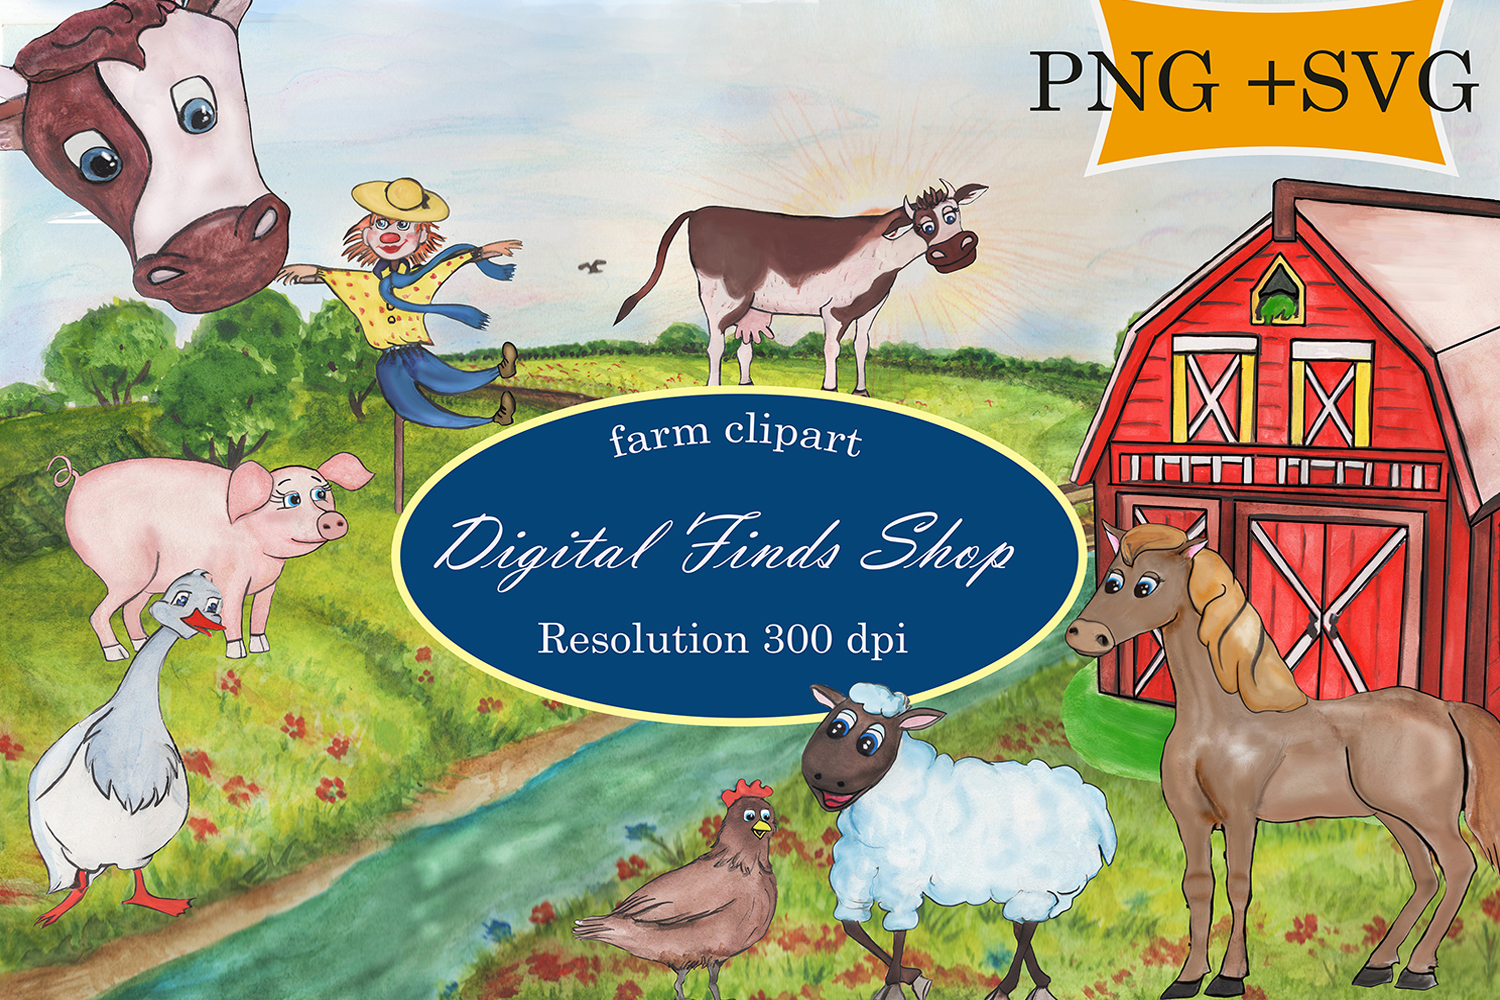 Farm clipart, farm animals in PNG, SVG formats watercolor.